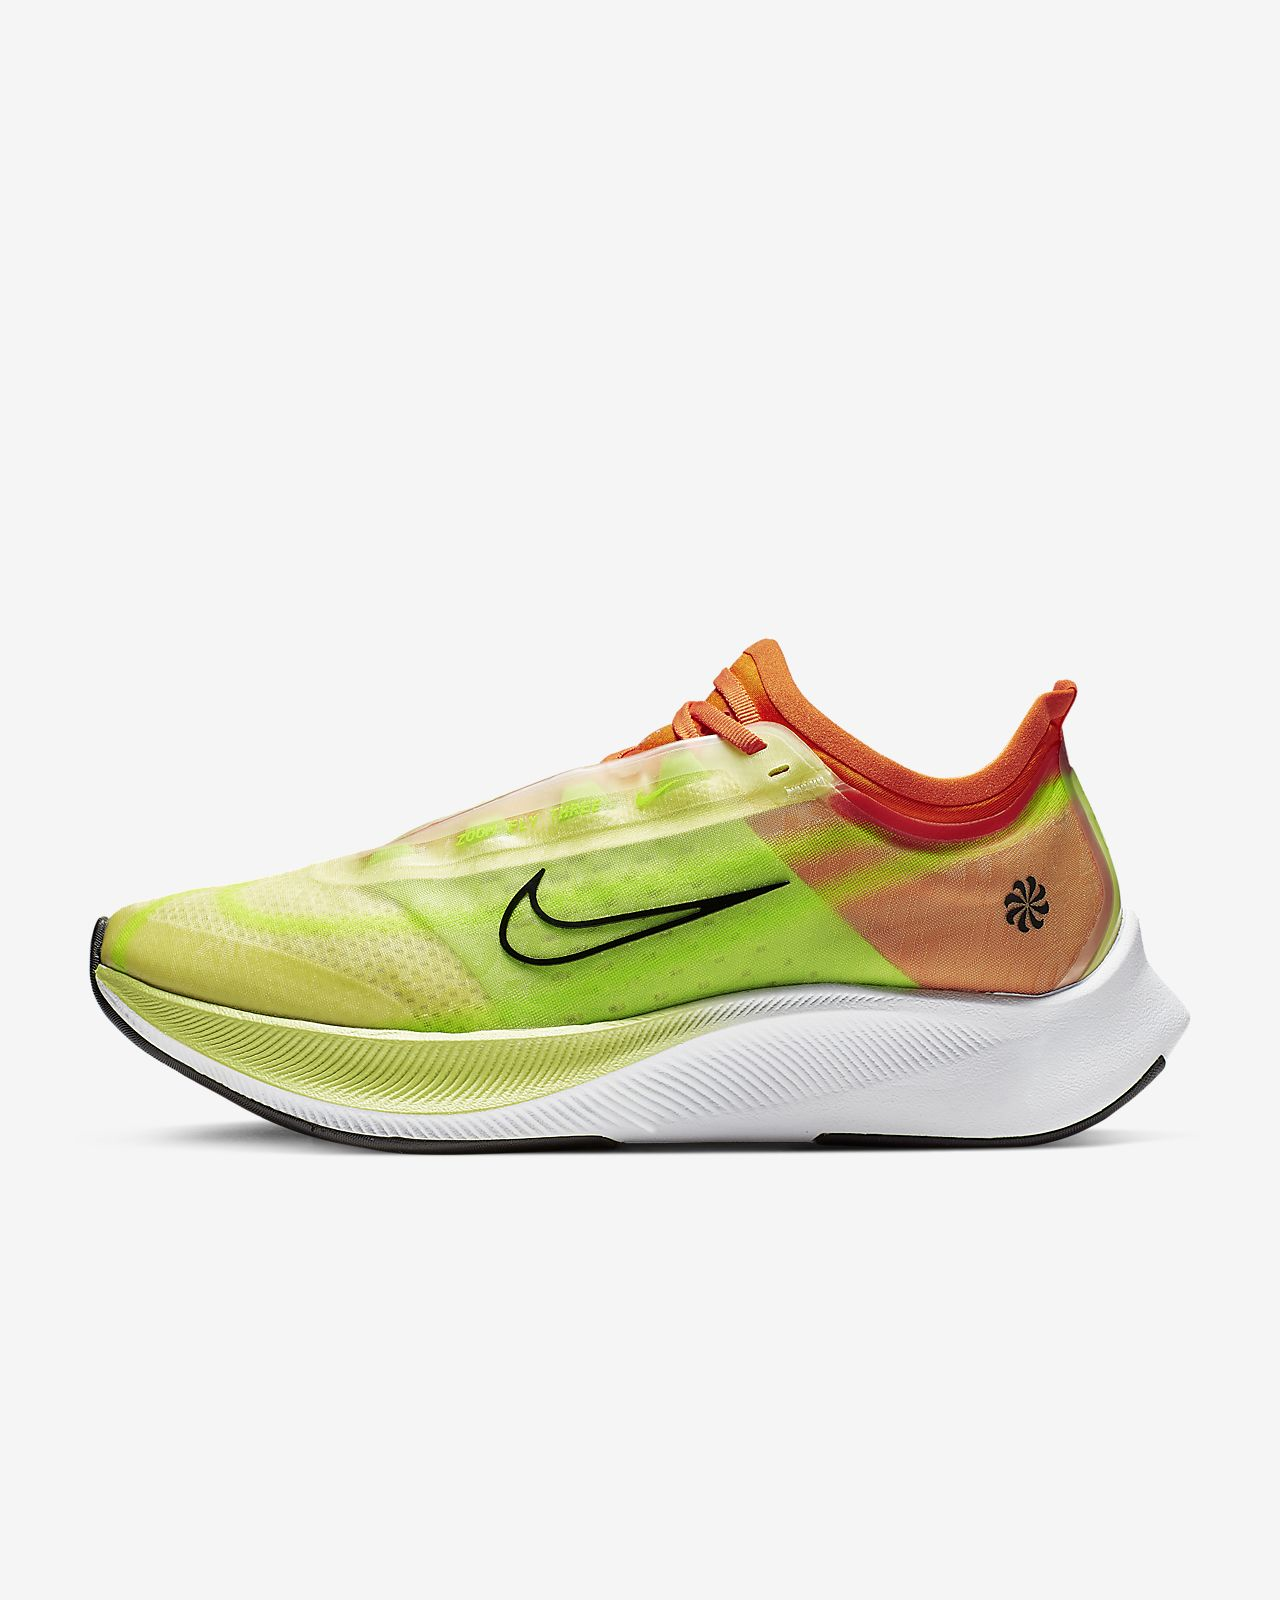 Chaussure de running Nike Zoom Fly 3 Rise pour Femme